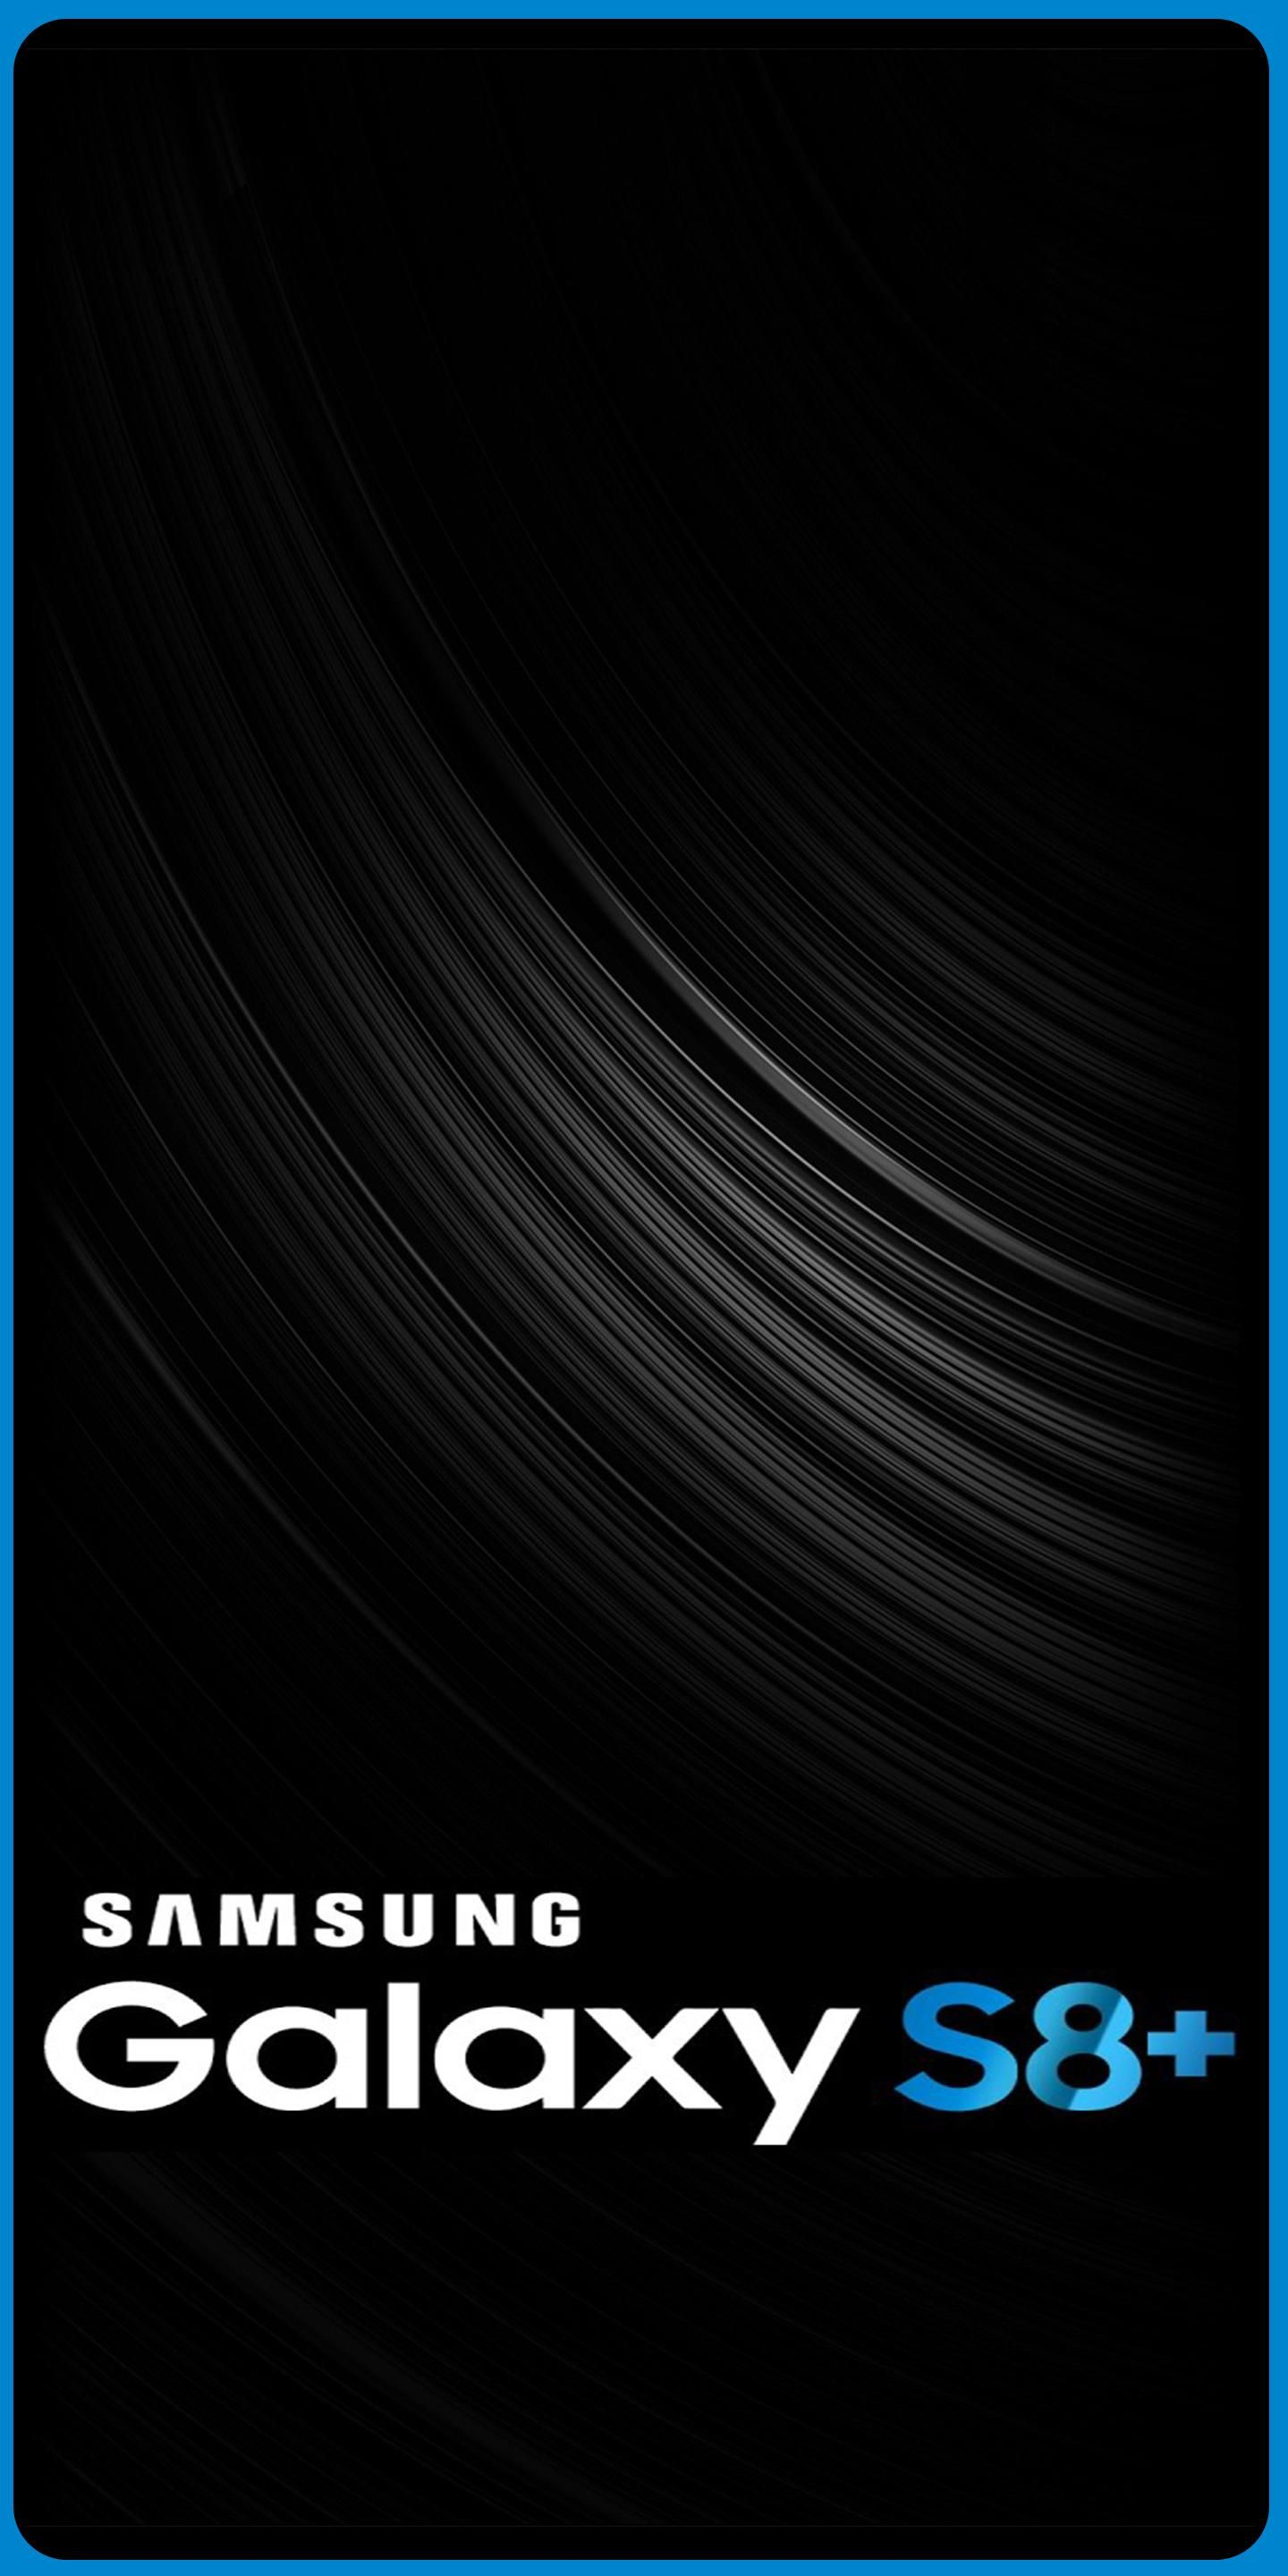 Galaxy S8 Plus Blue Iphone Wallpapers Pinterest Iphone